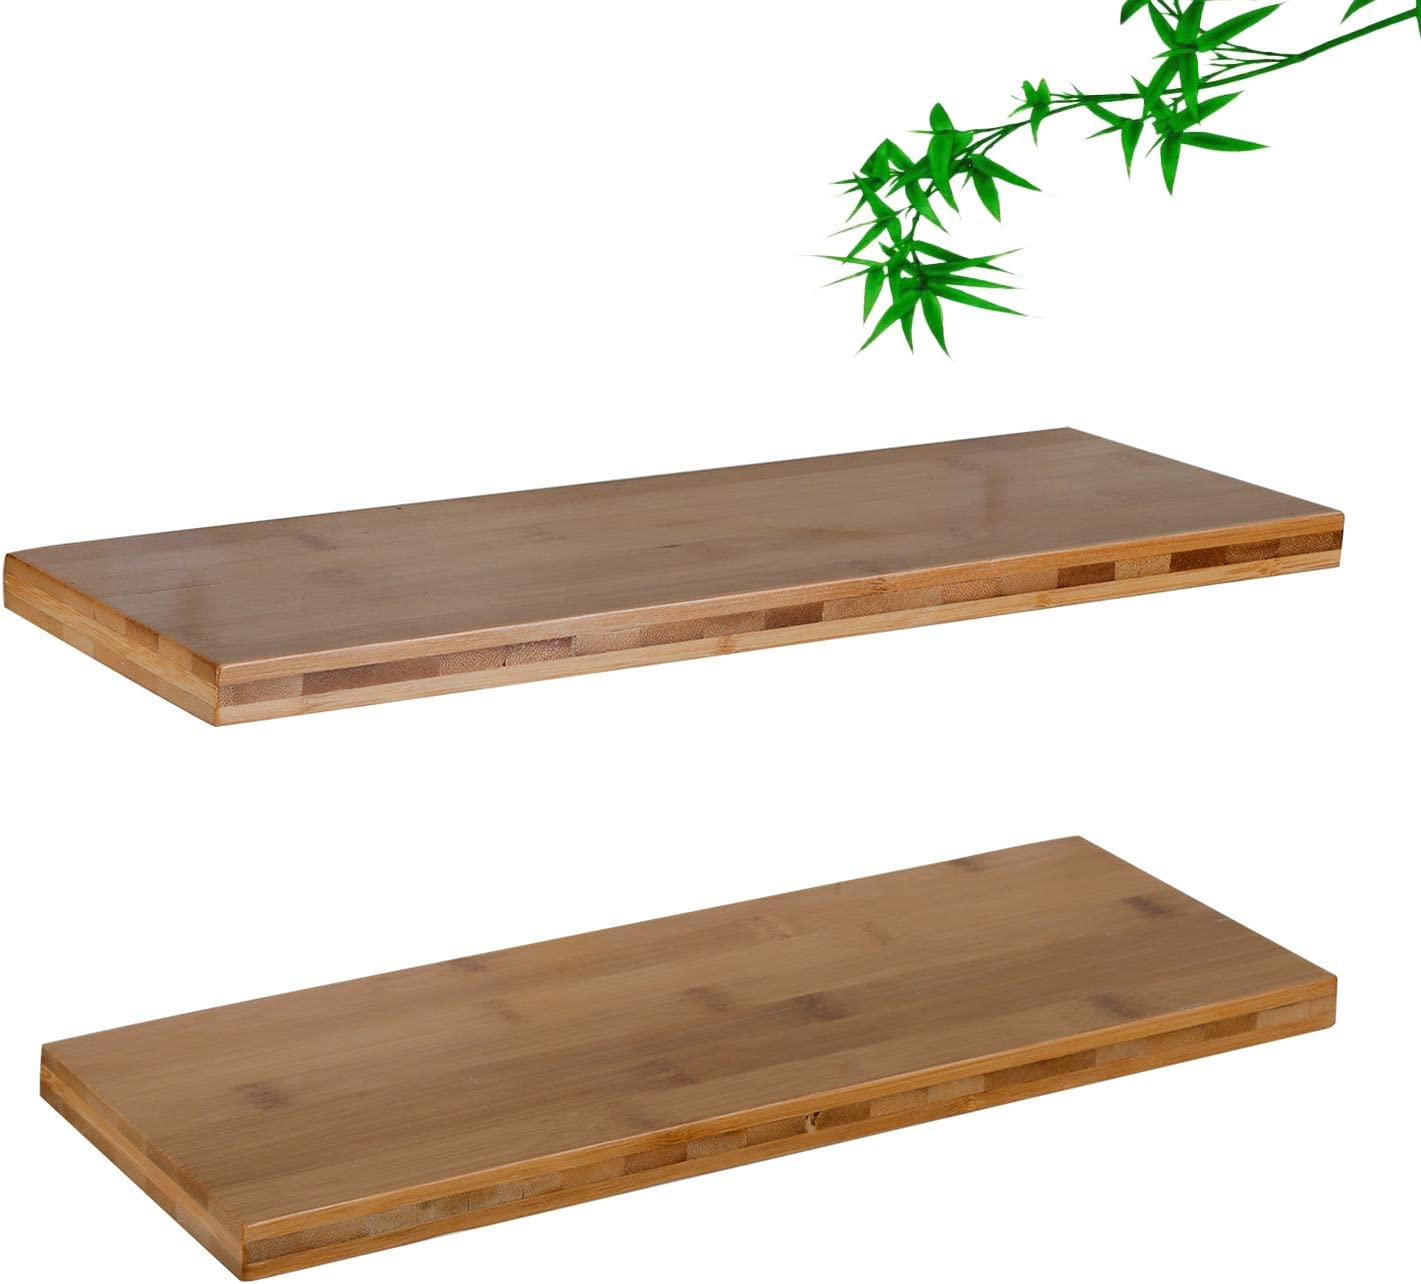 Amazon Com Floating Wooden Wall Shelves Bamboo Pack Of 2 16 Inches Waterproof Shelf Wall Mounted Decorative For Living Room Kitchen Bathroom Bedroom Office Home Decorative For Book Plants Bamboo Color Furniture Decor